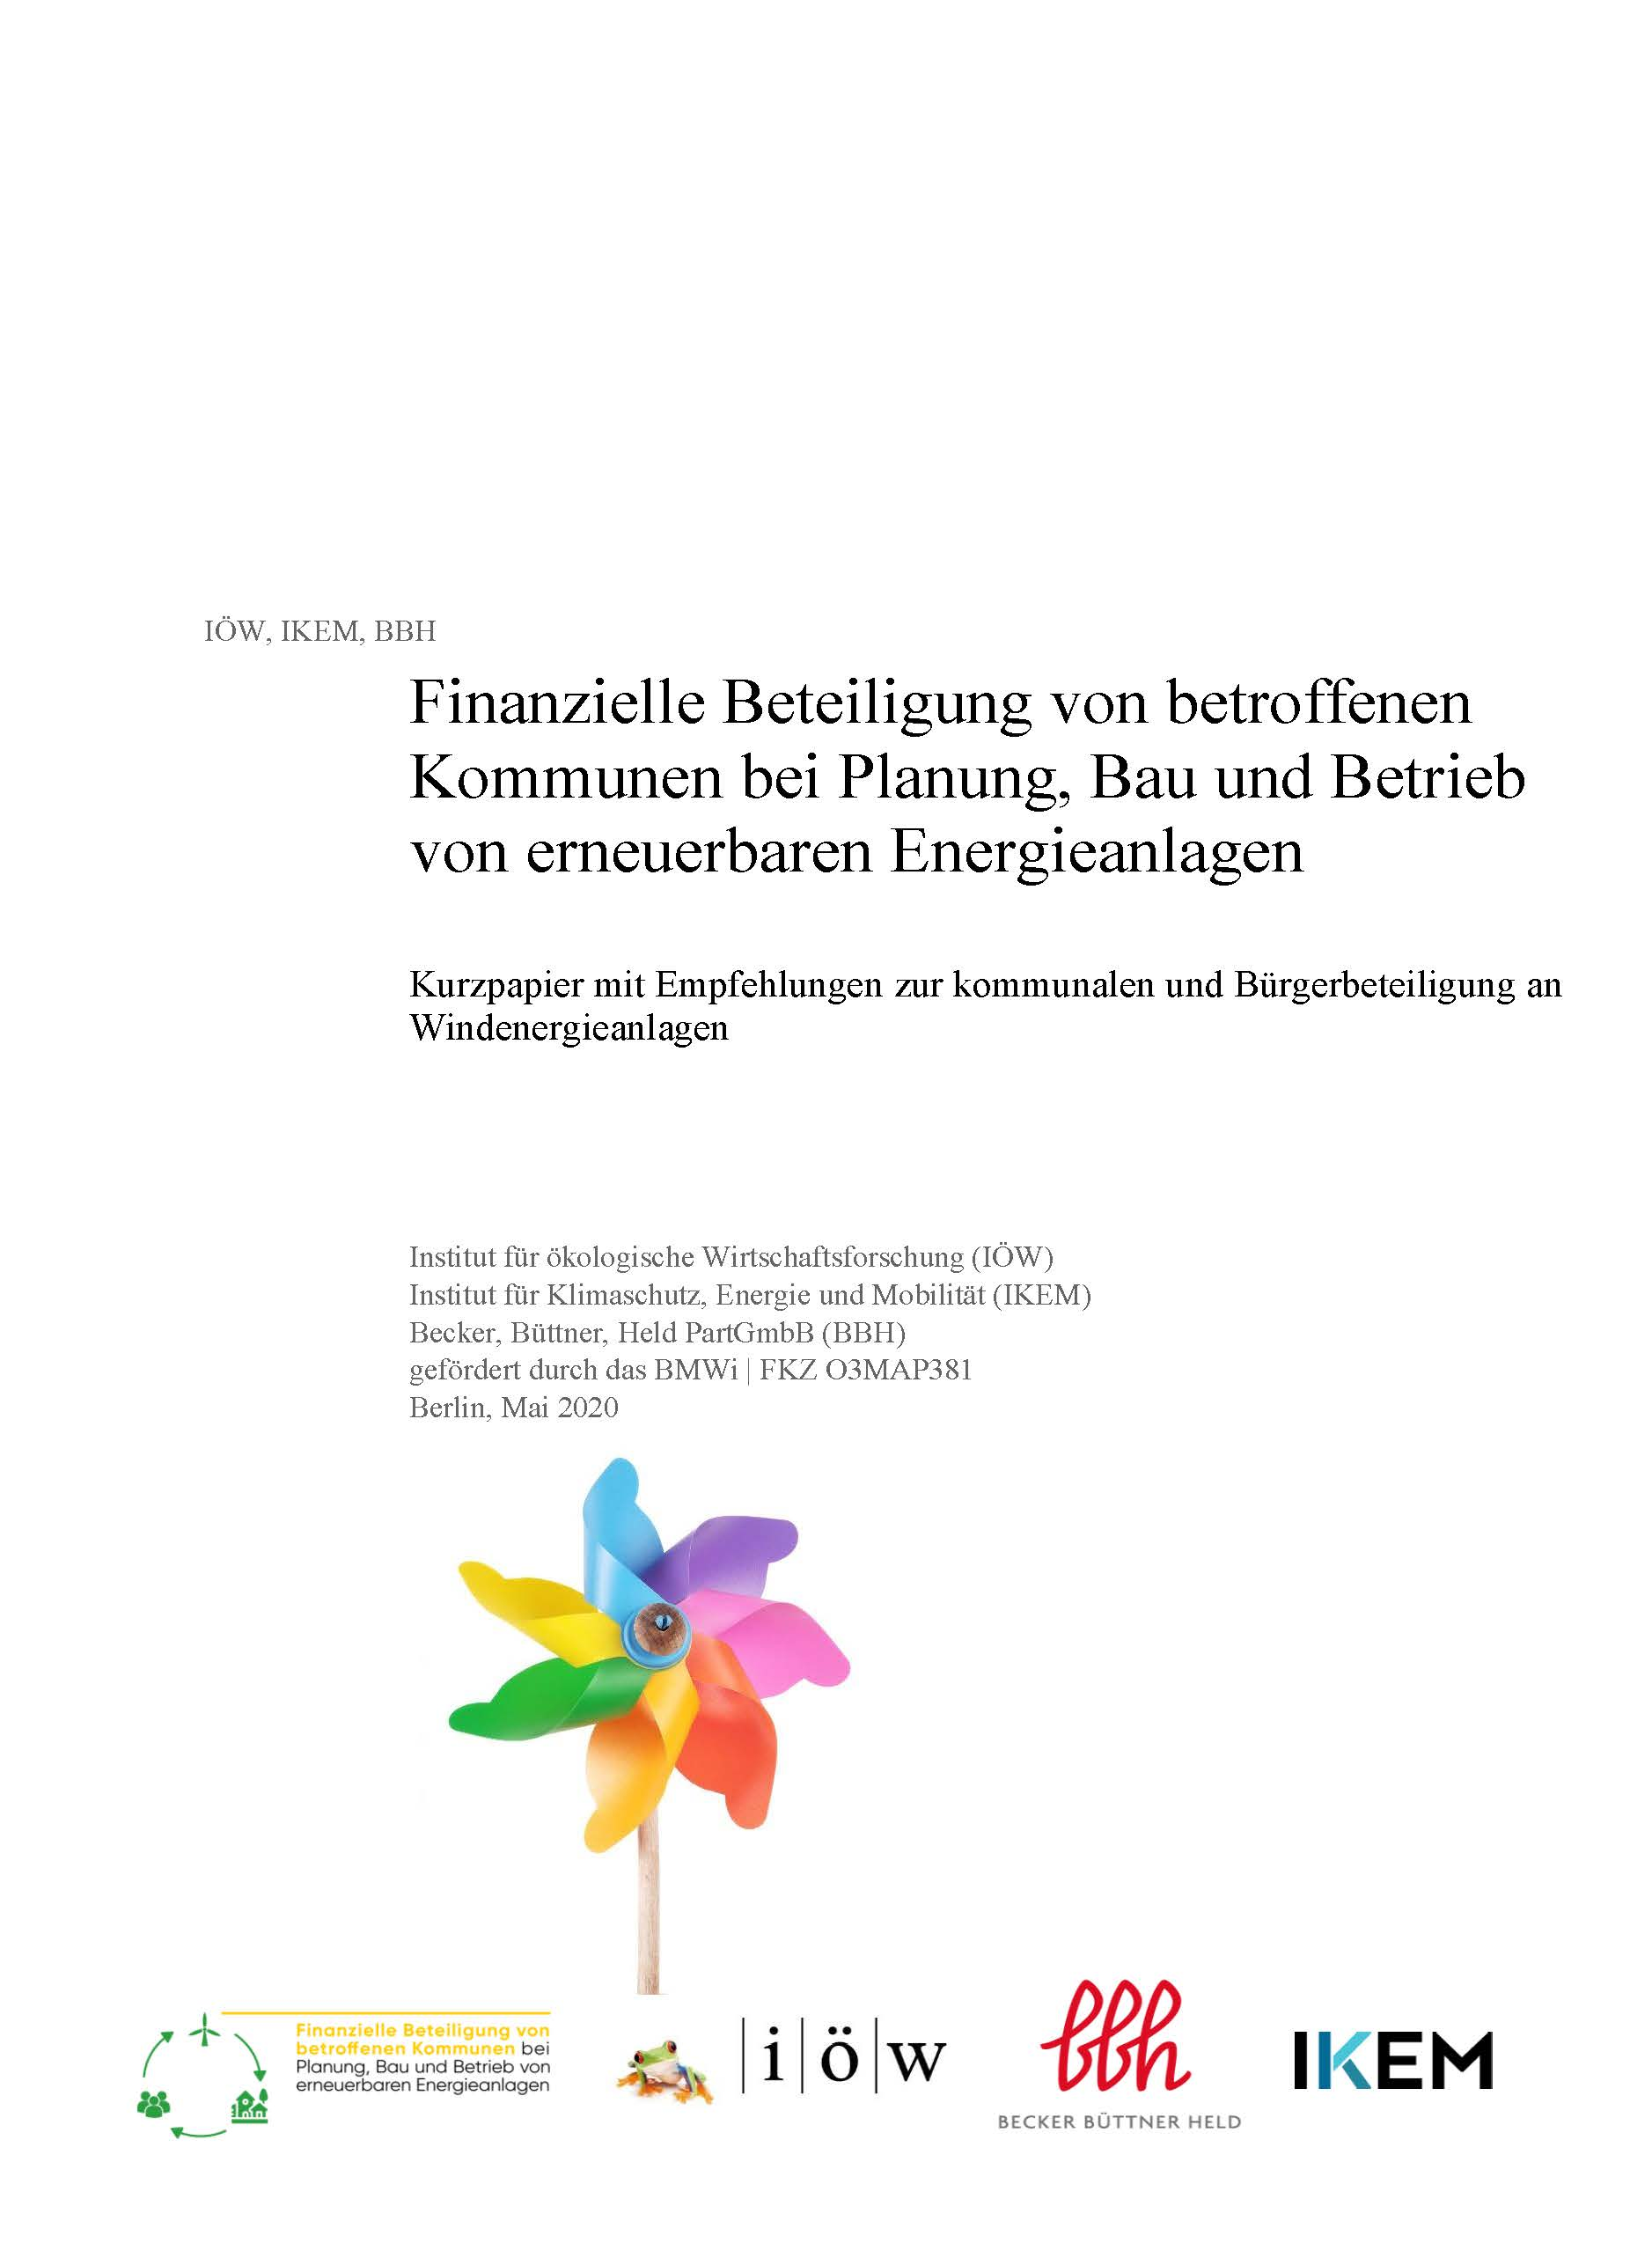 Financial participation of affected municipalities in the planning, construction and operation of renewable energy systems